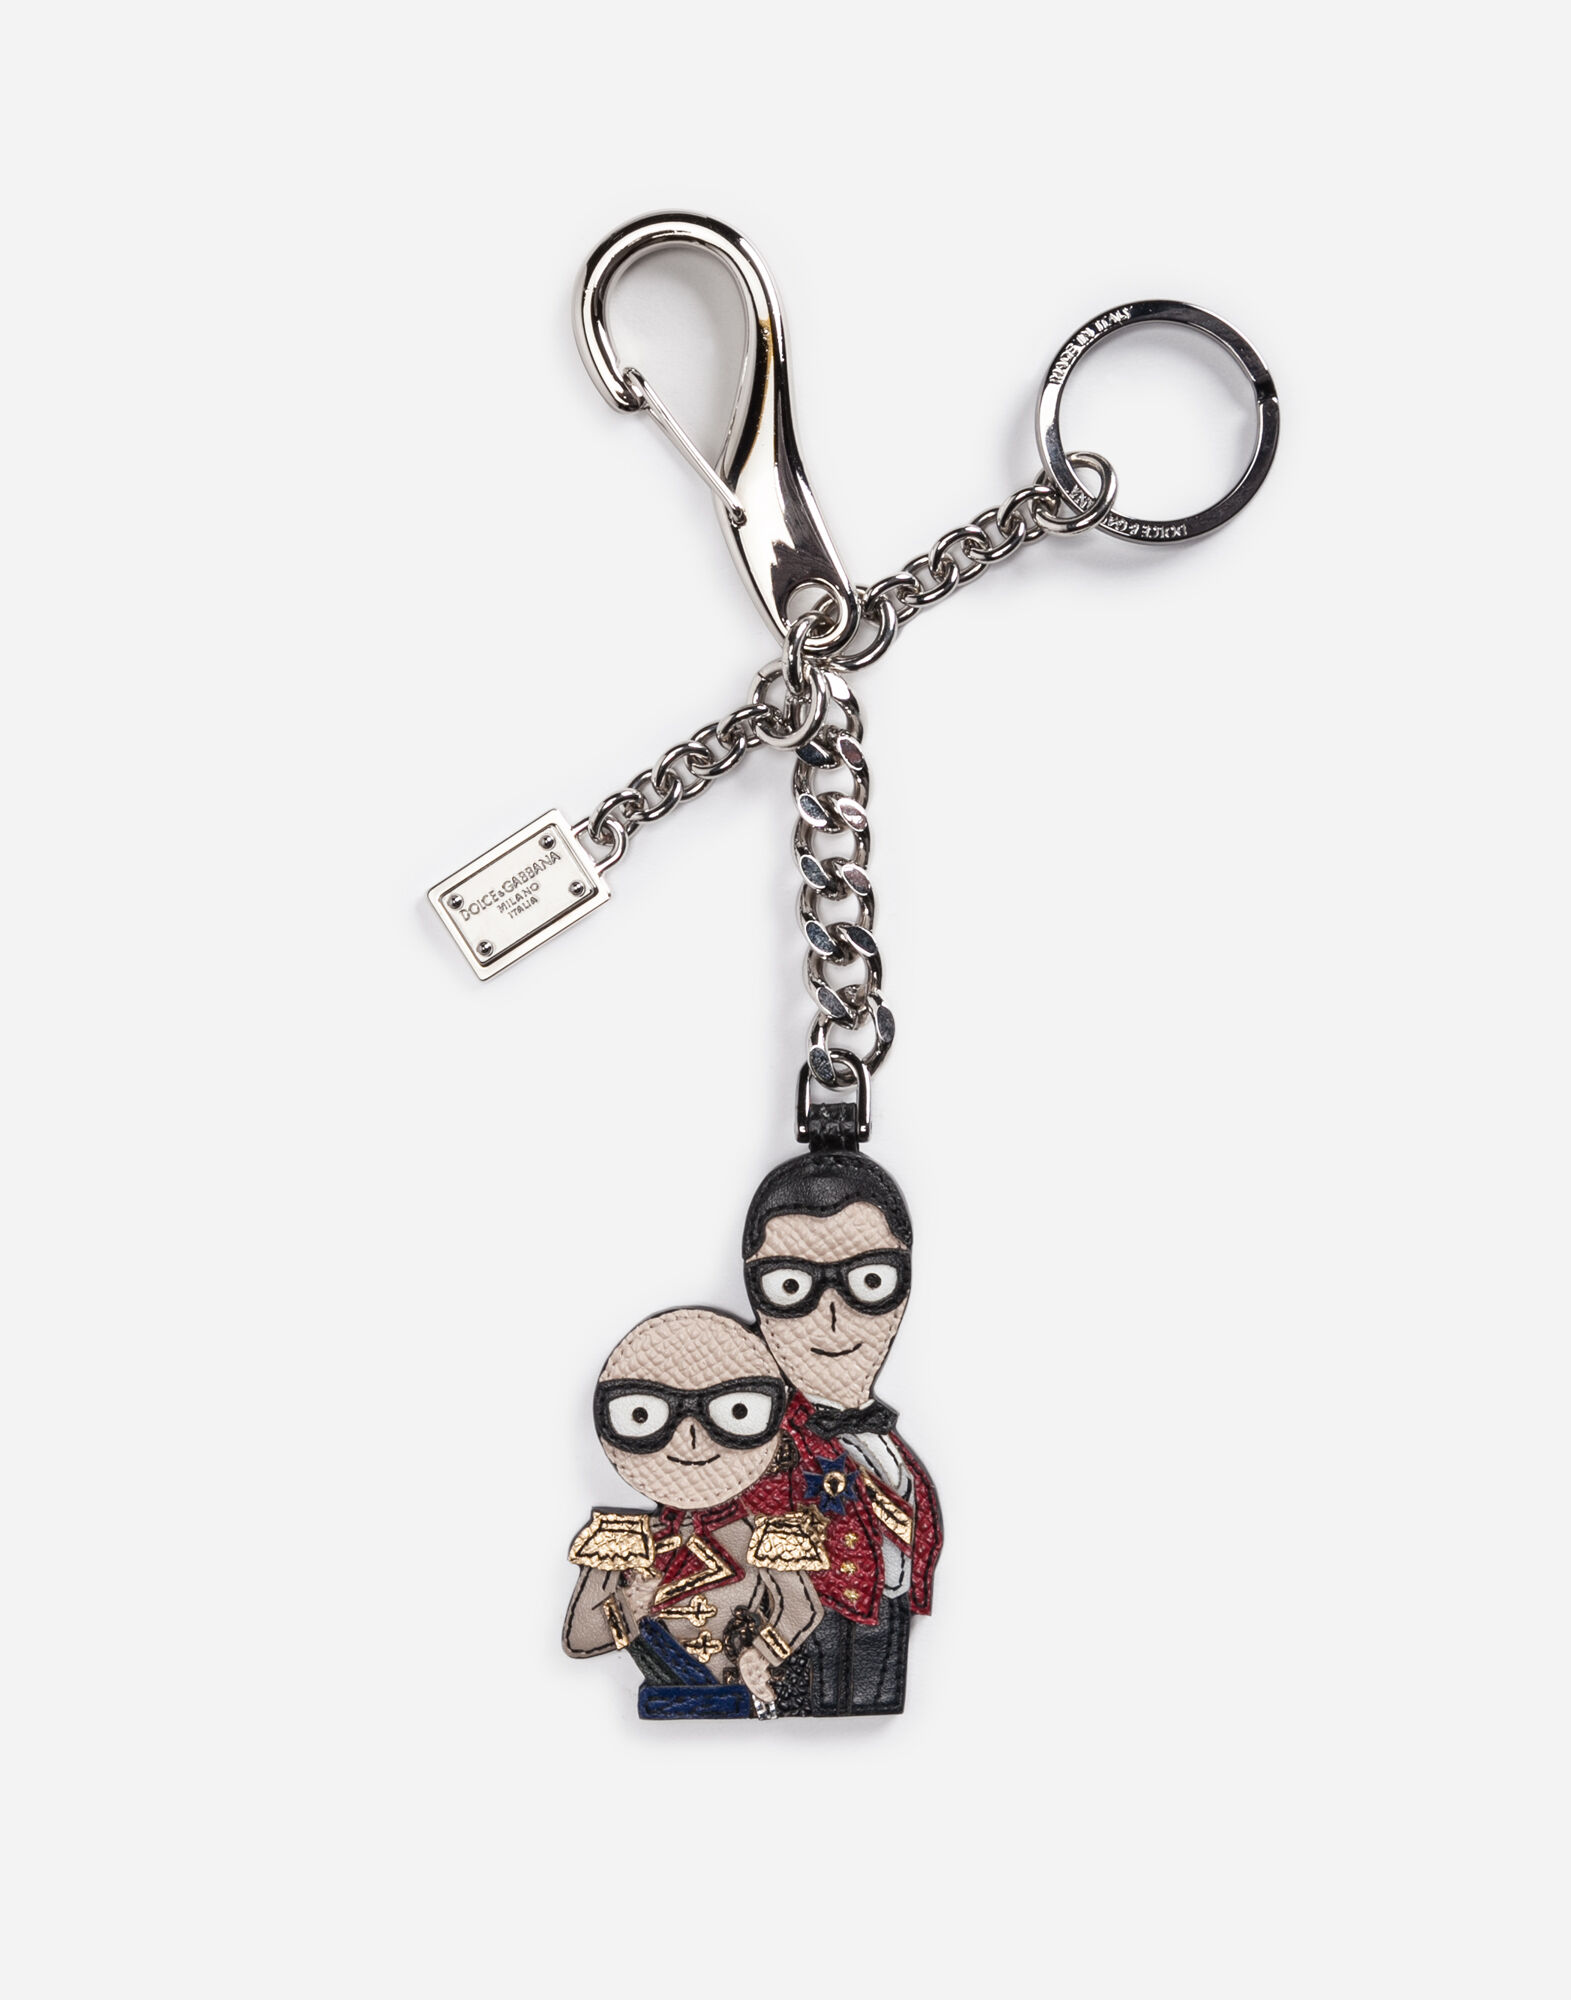 KEYRING WITH DESIGNERS' CHARM